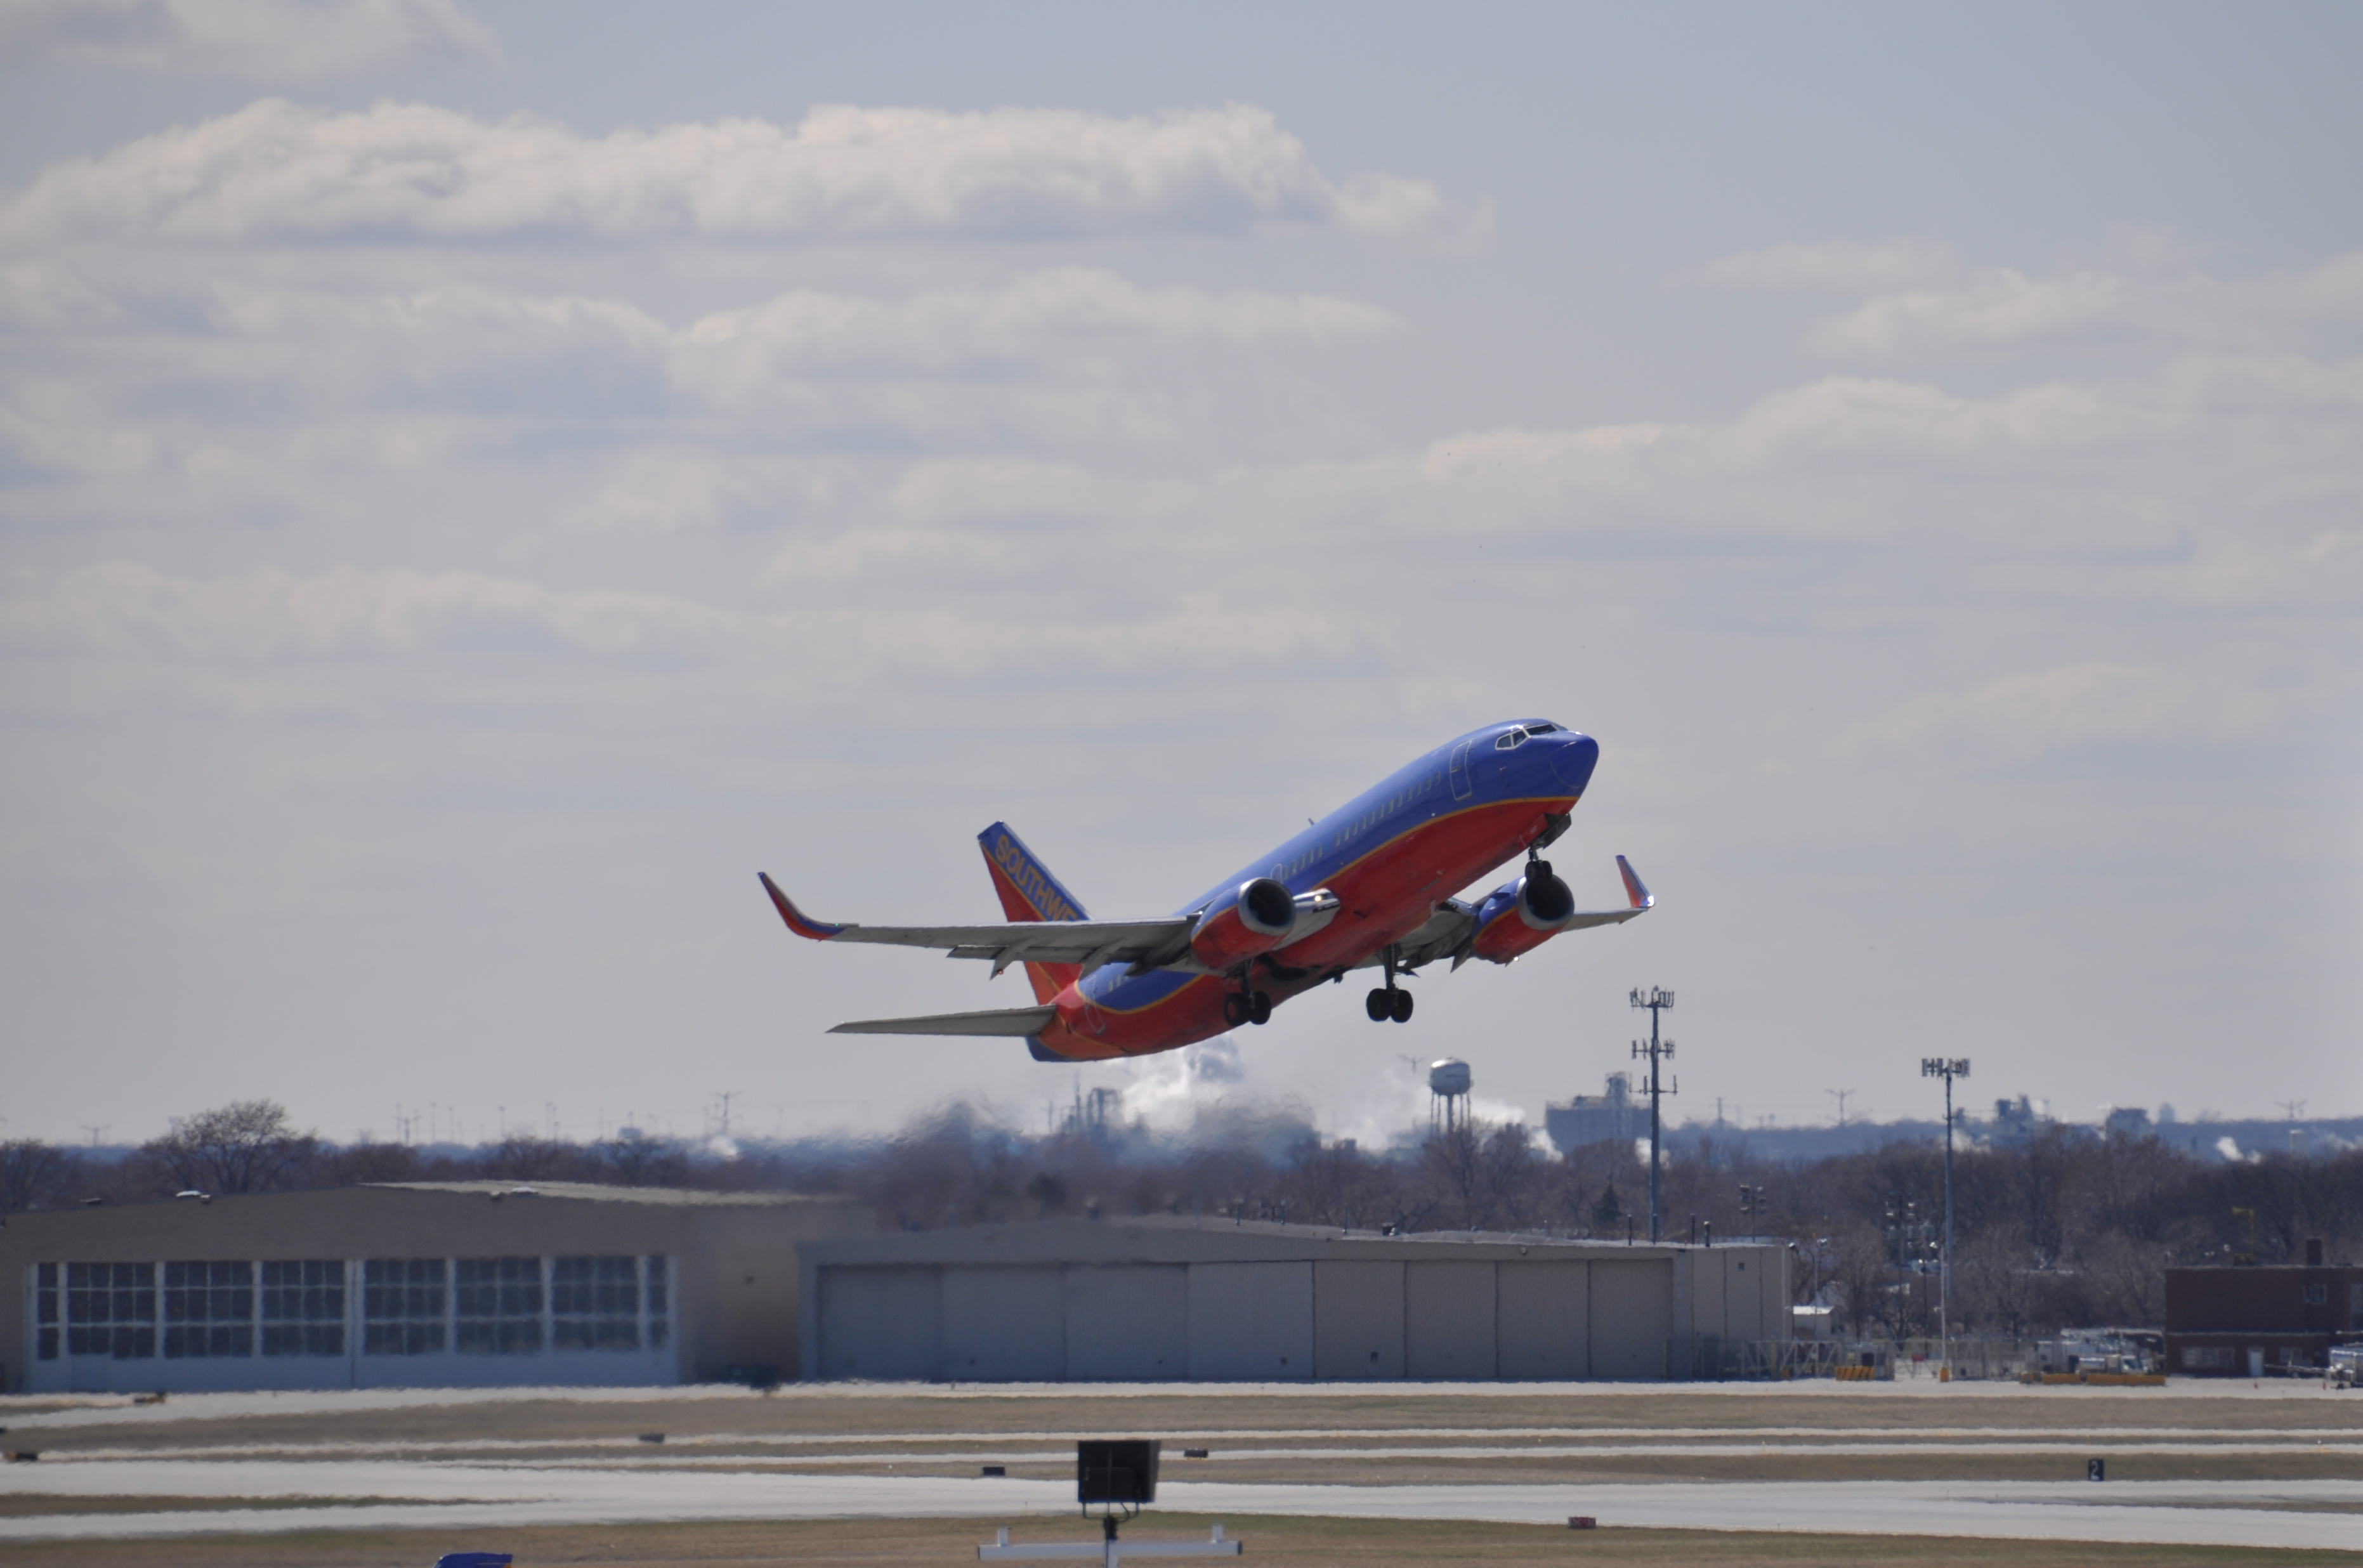 Day 85: Plane | Showcasing Chicago One Image at a Time